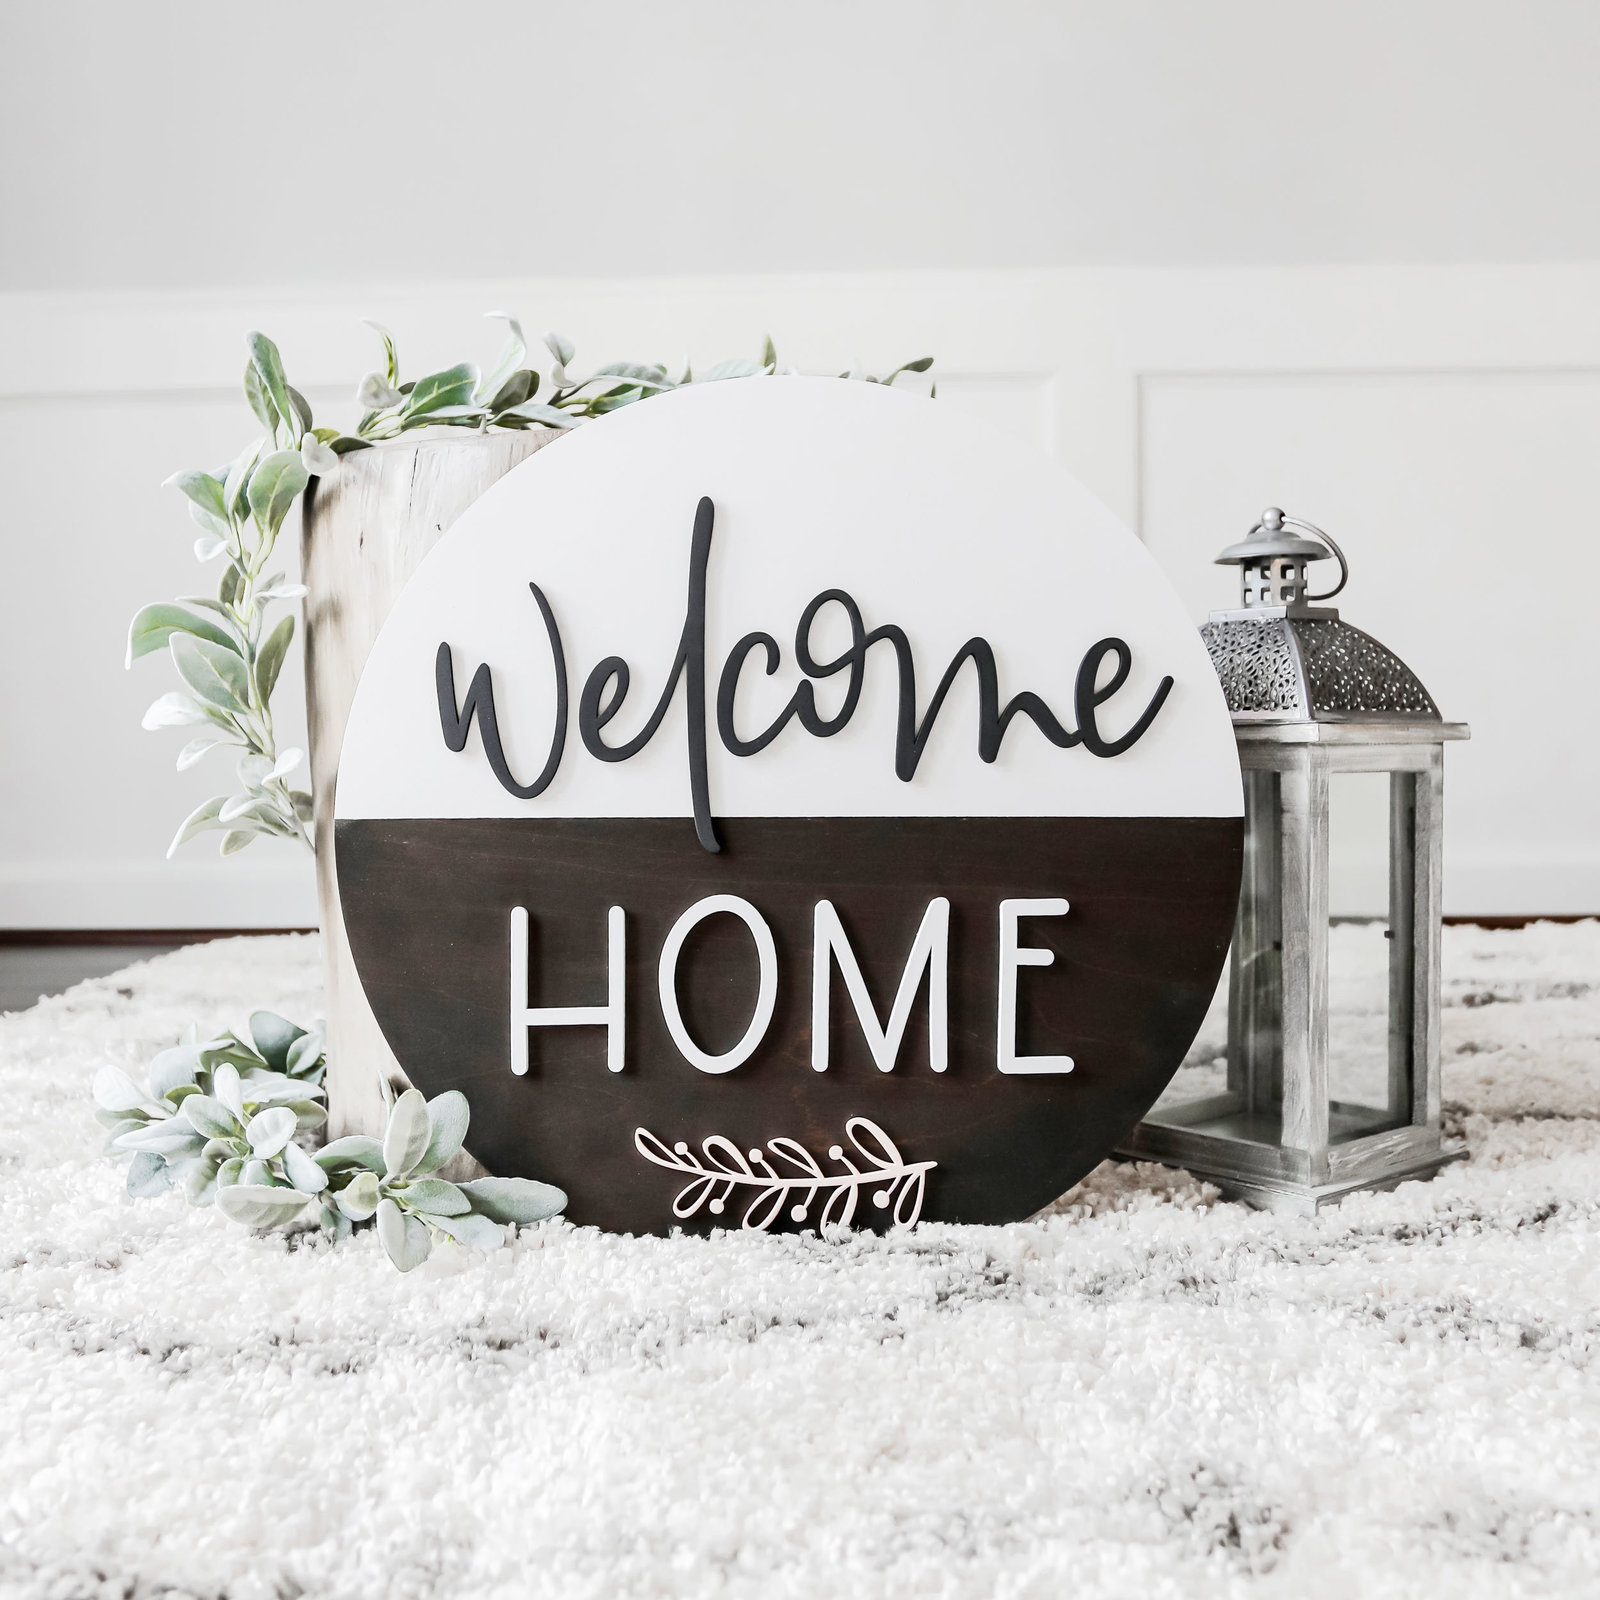 welcomeColorBlock_EDITED-4159_web